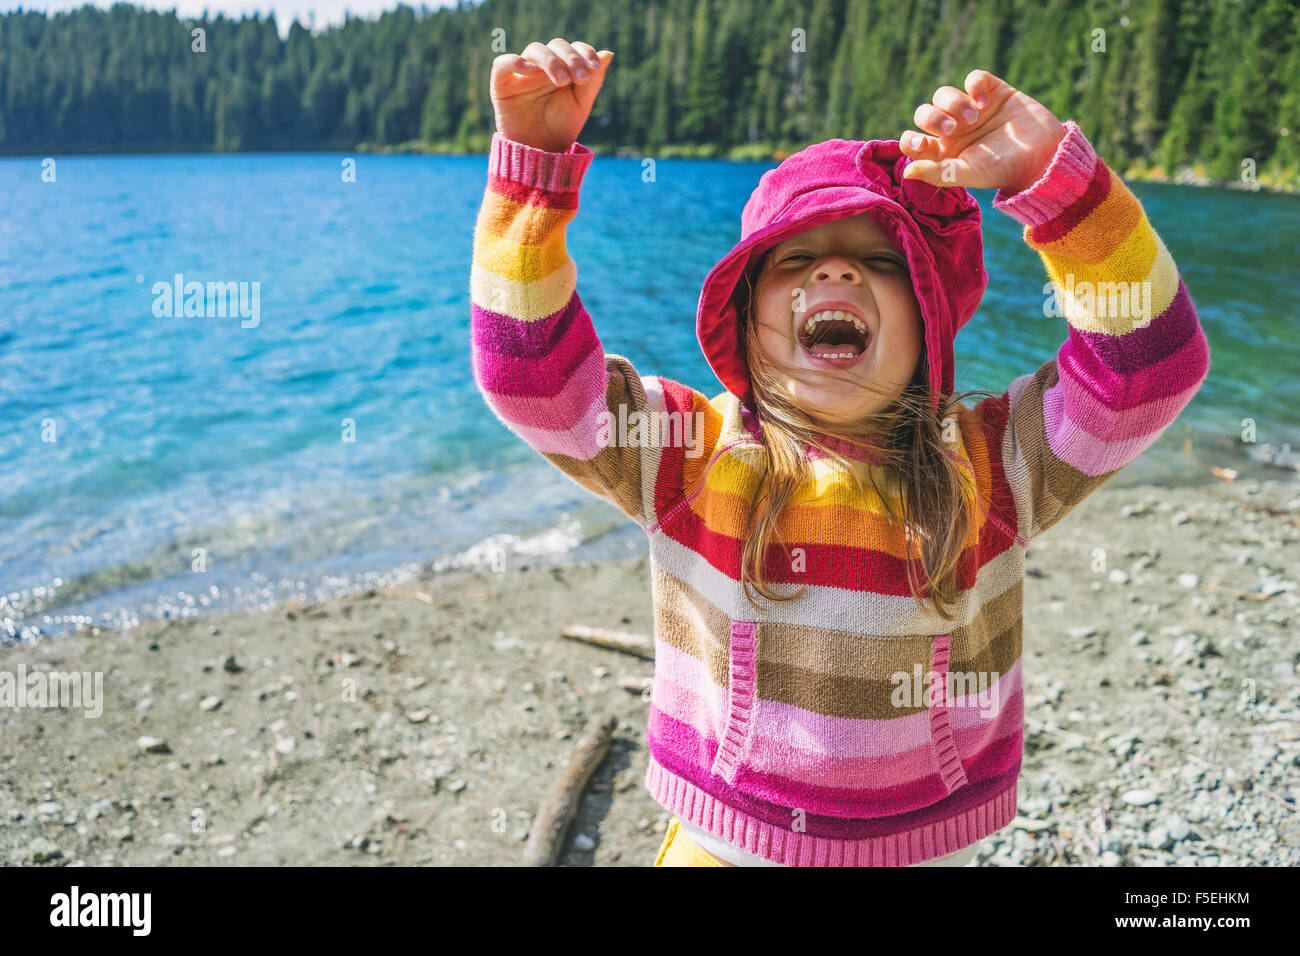 Young girl laughing with her arms in the air - Stock Image